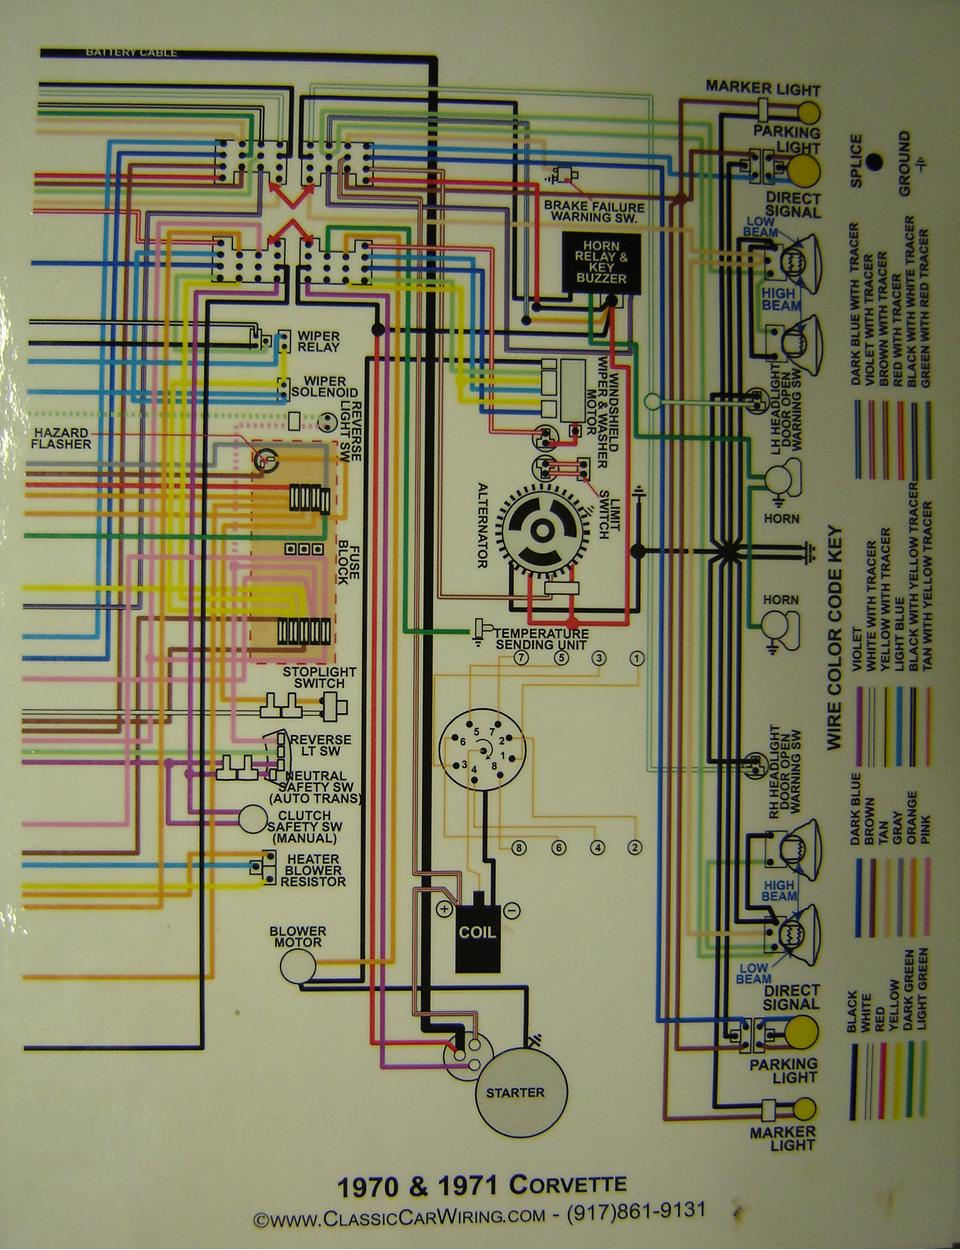 1972 Nova Wiring Diagram In Color The Portal And Forum Of Corvette Third Level Rh 7 4 13 Jacobwinterstein Com